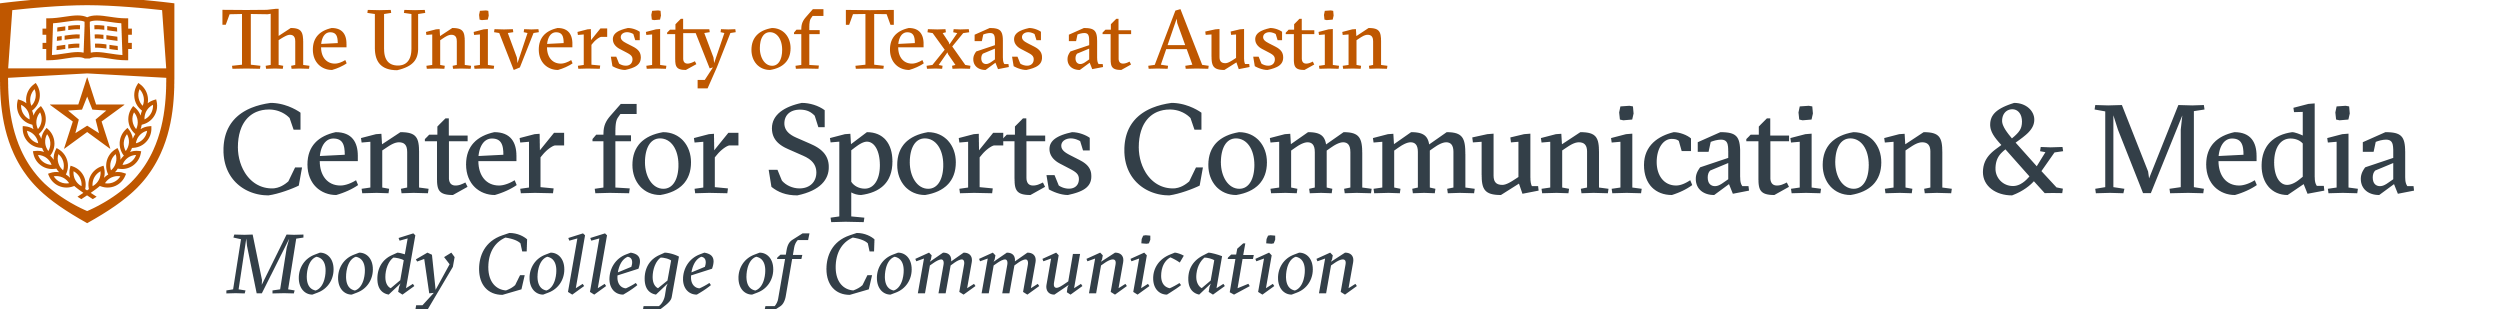 Center for Sports Communication & Media logo